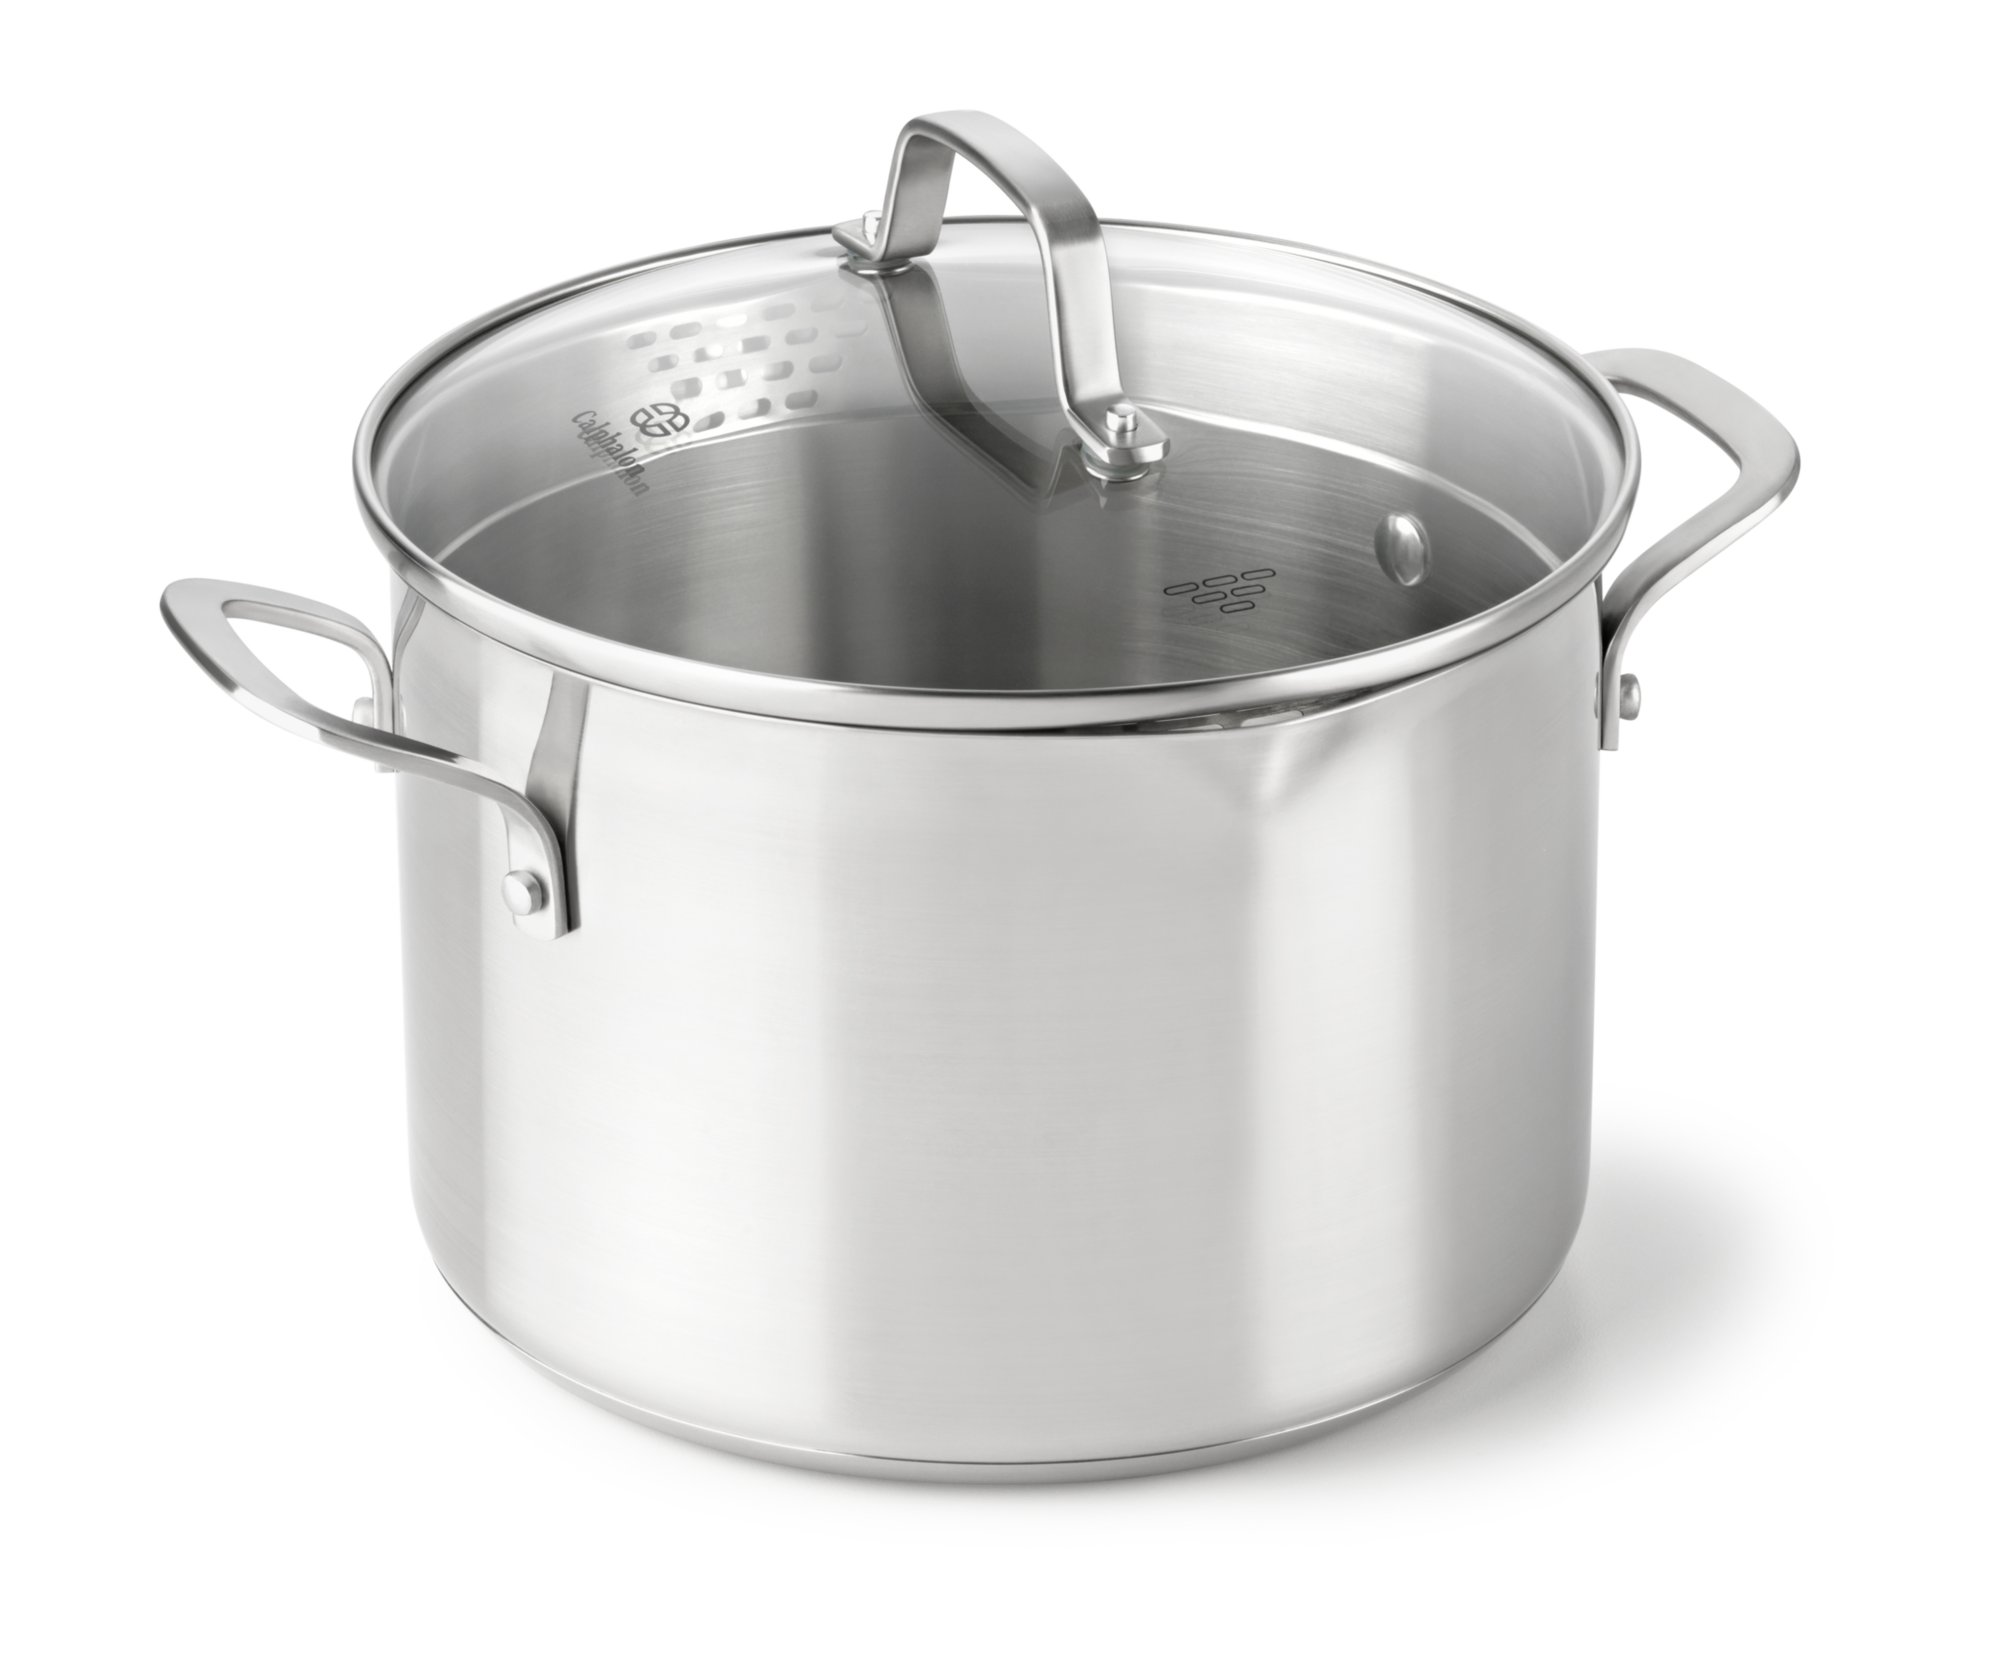 Calphalon Classic Stainless Steel 6qt Stock Pot With Cover